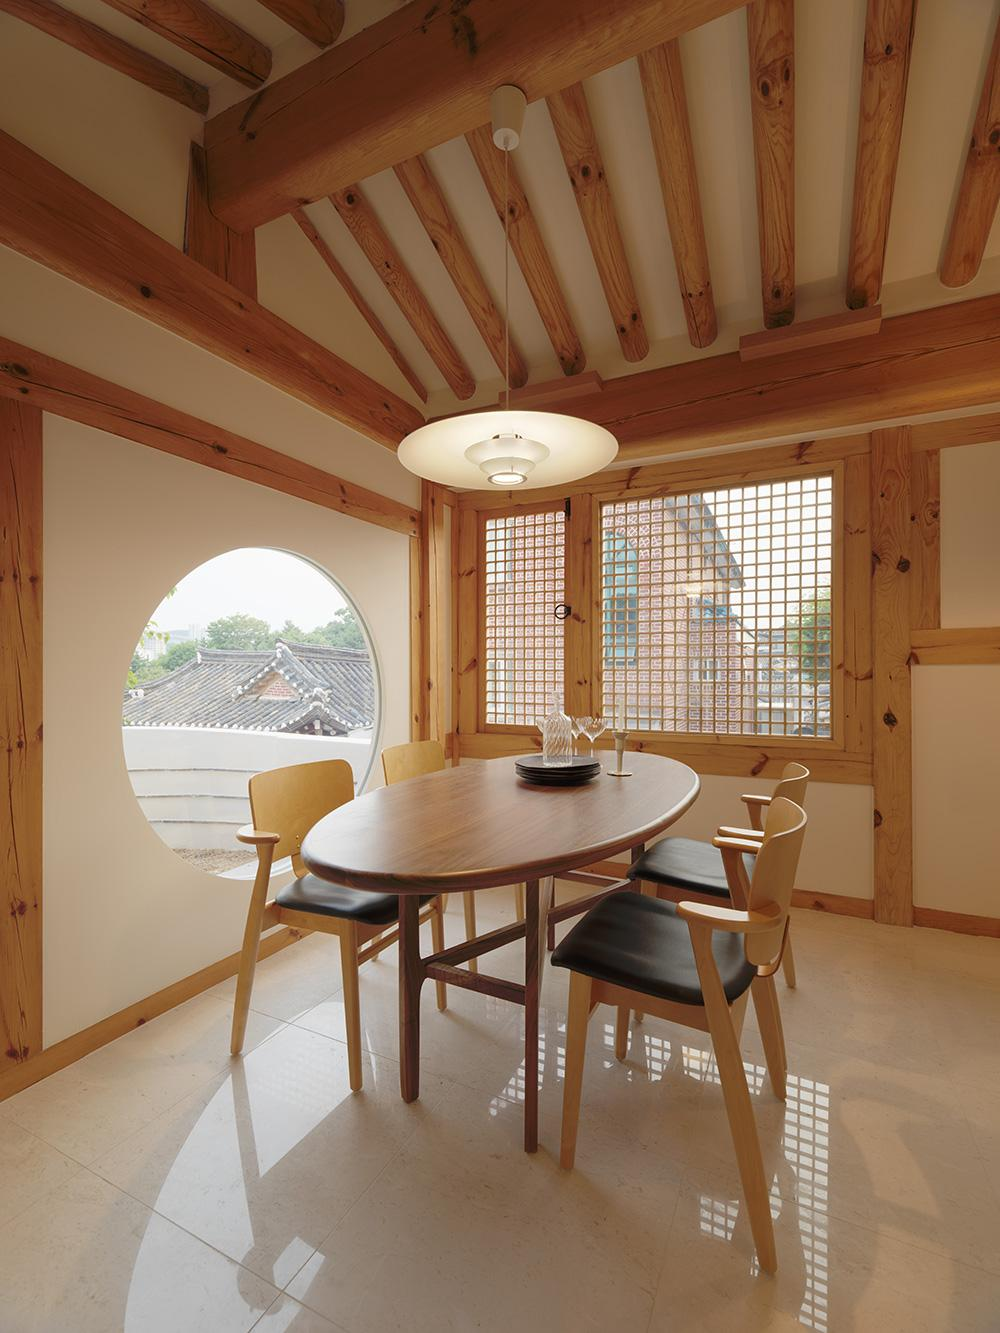 Traditional South Korean architecture meets innovation in a renovated hanok house